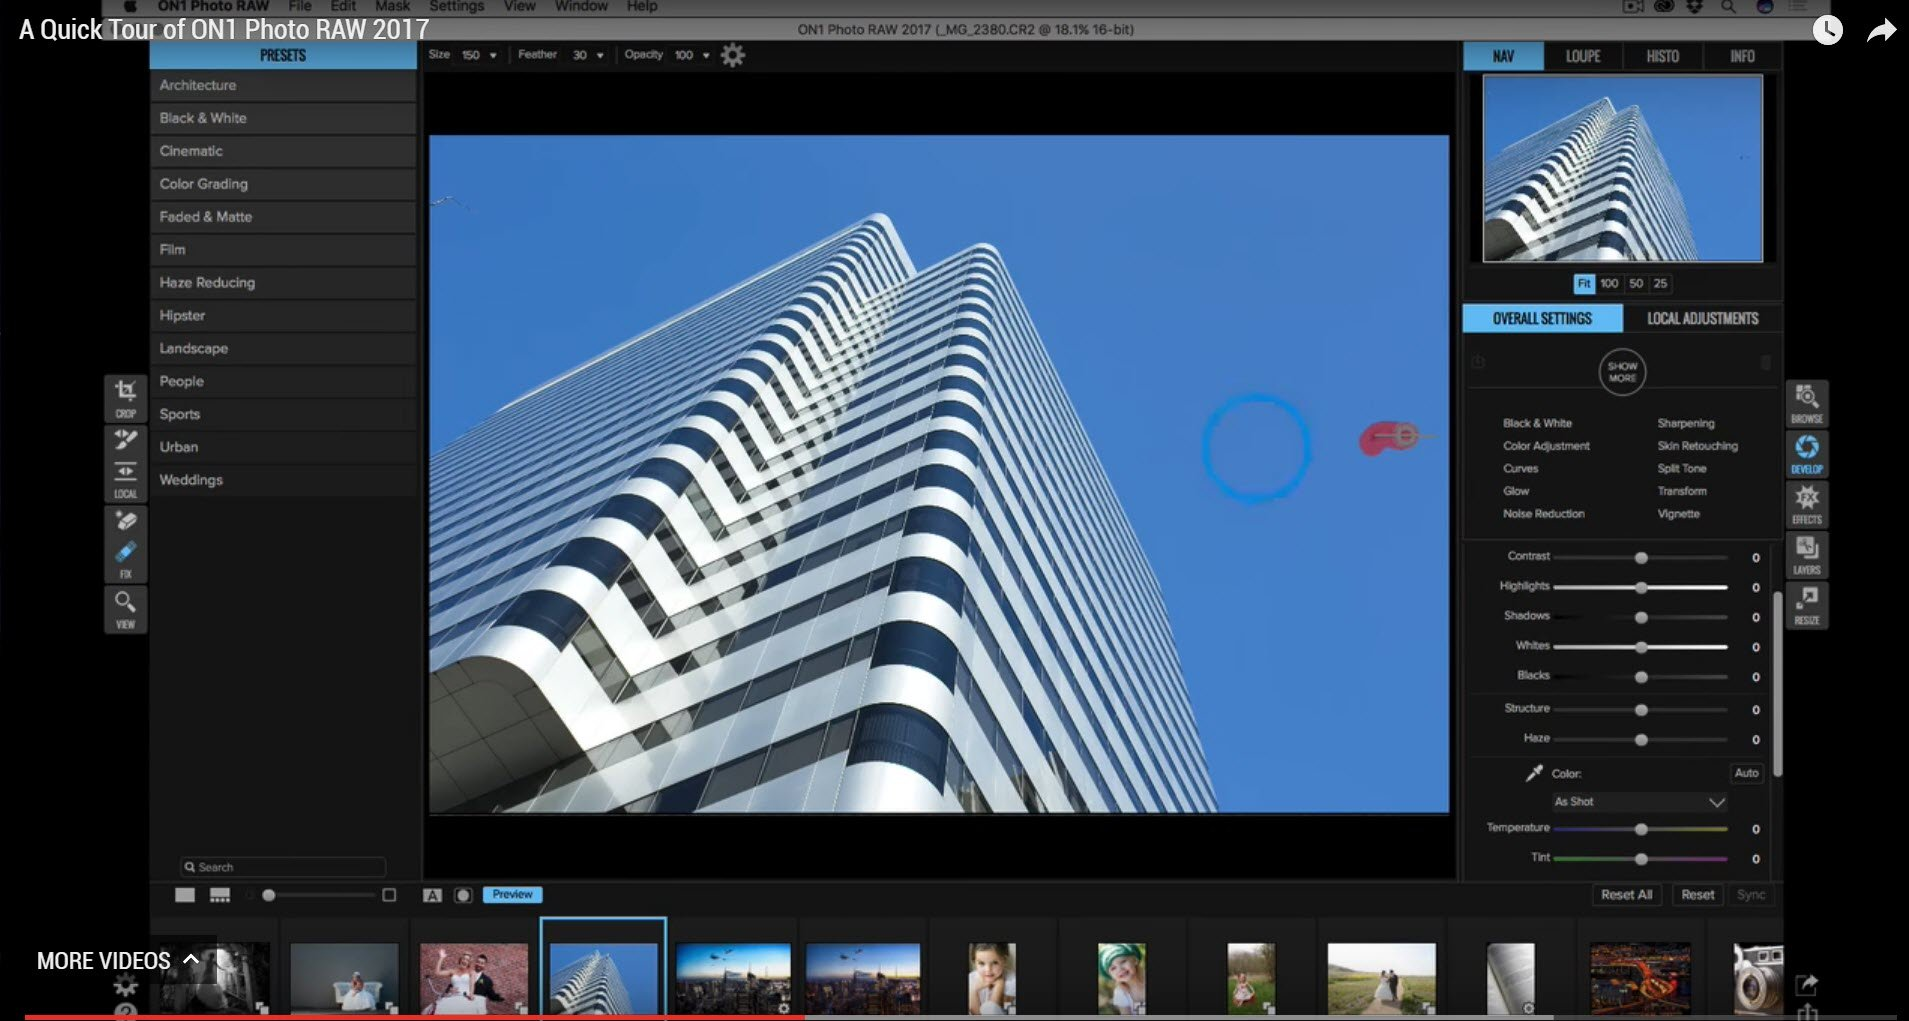 How To Easily Edit Photos Like The Pros With ON1 Photo Raw